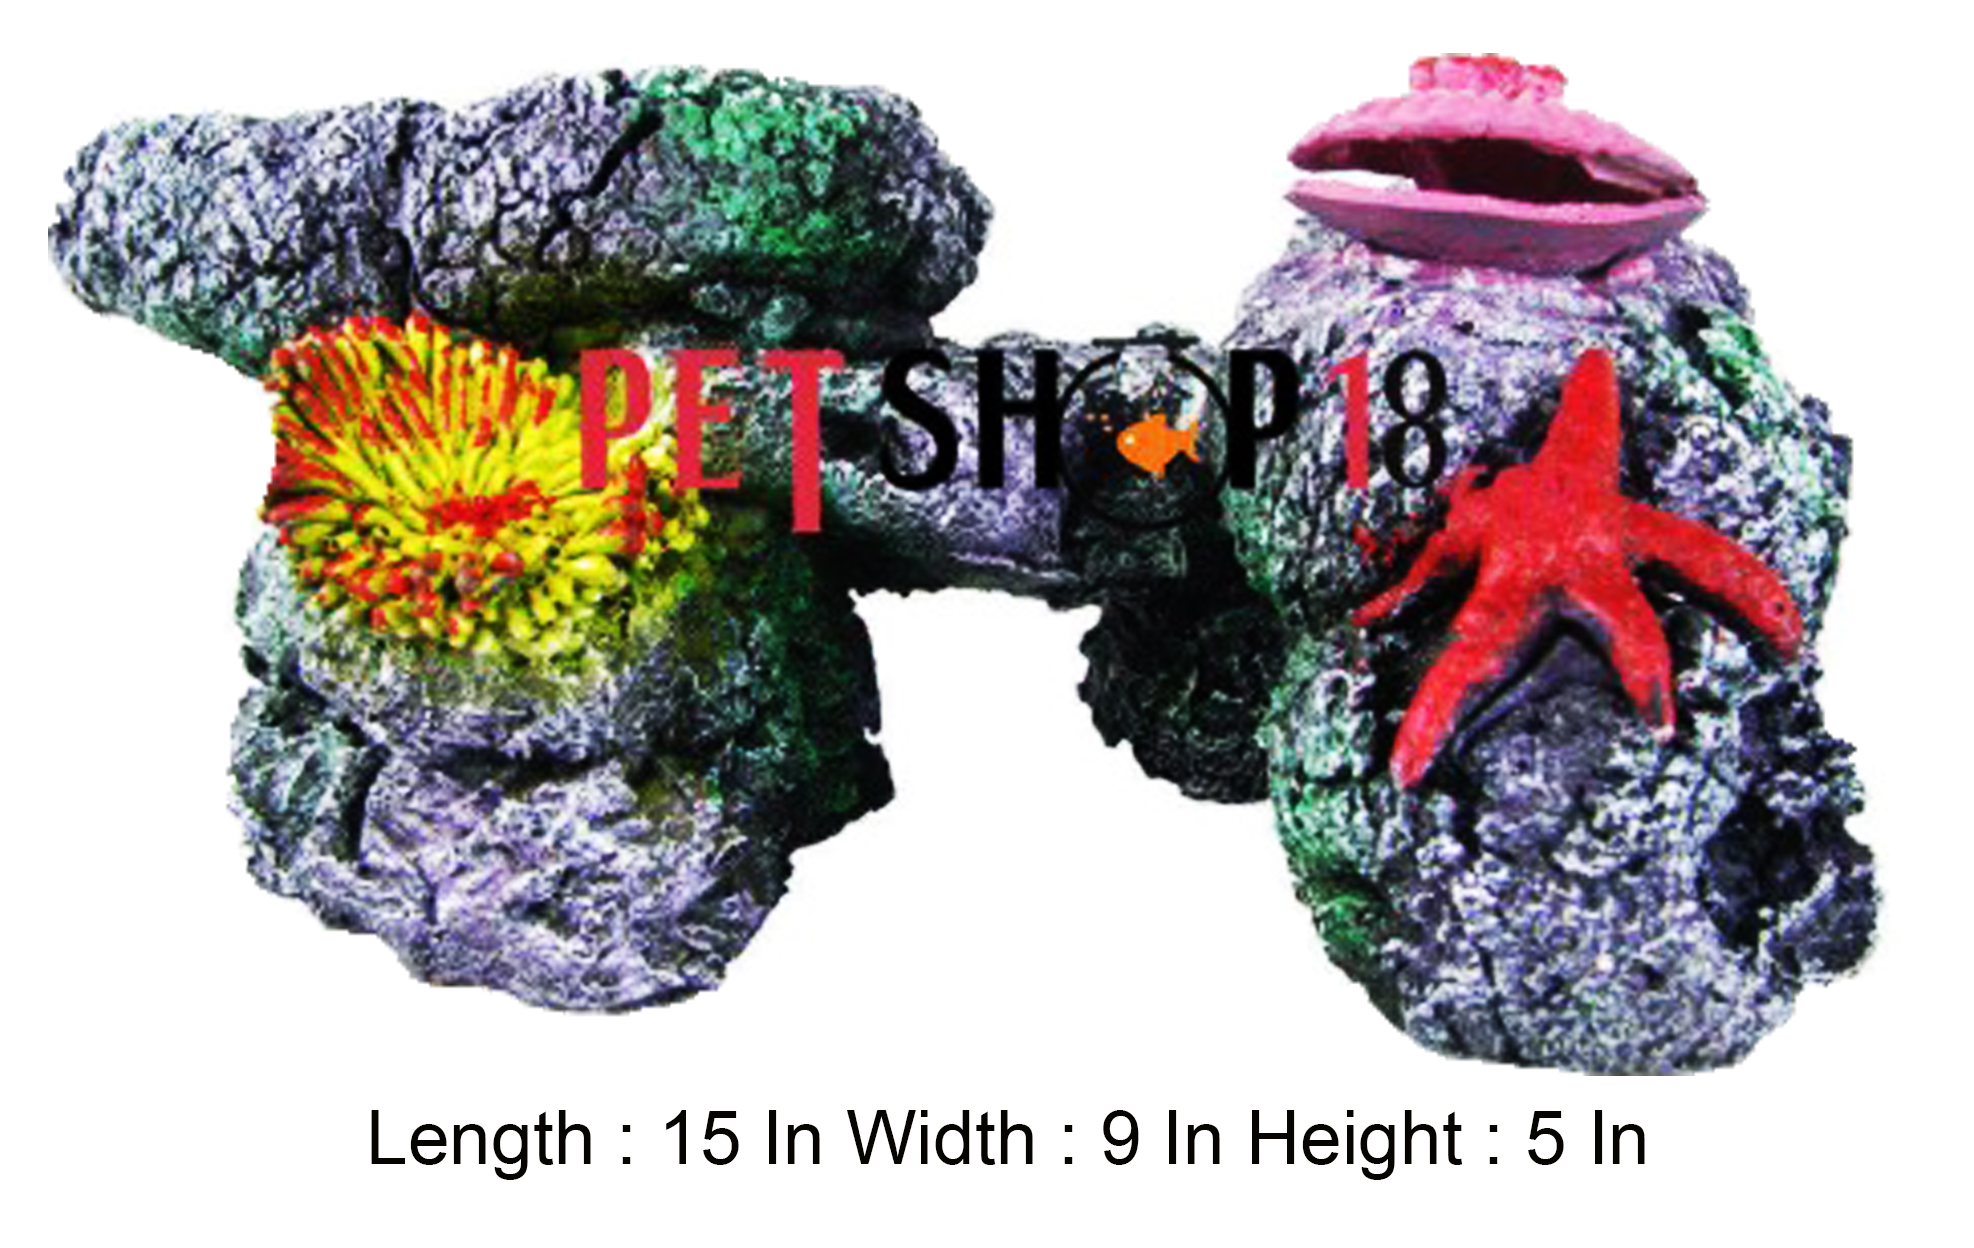 Fish aquarium online delhi - Colorful Coral With Star Fish And Shell Aquarium Toy